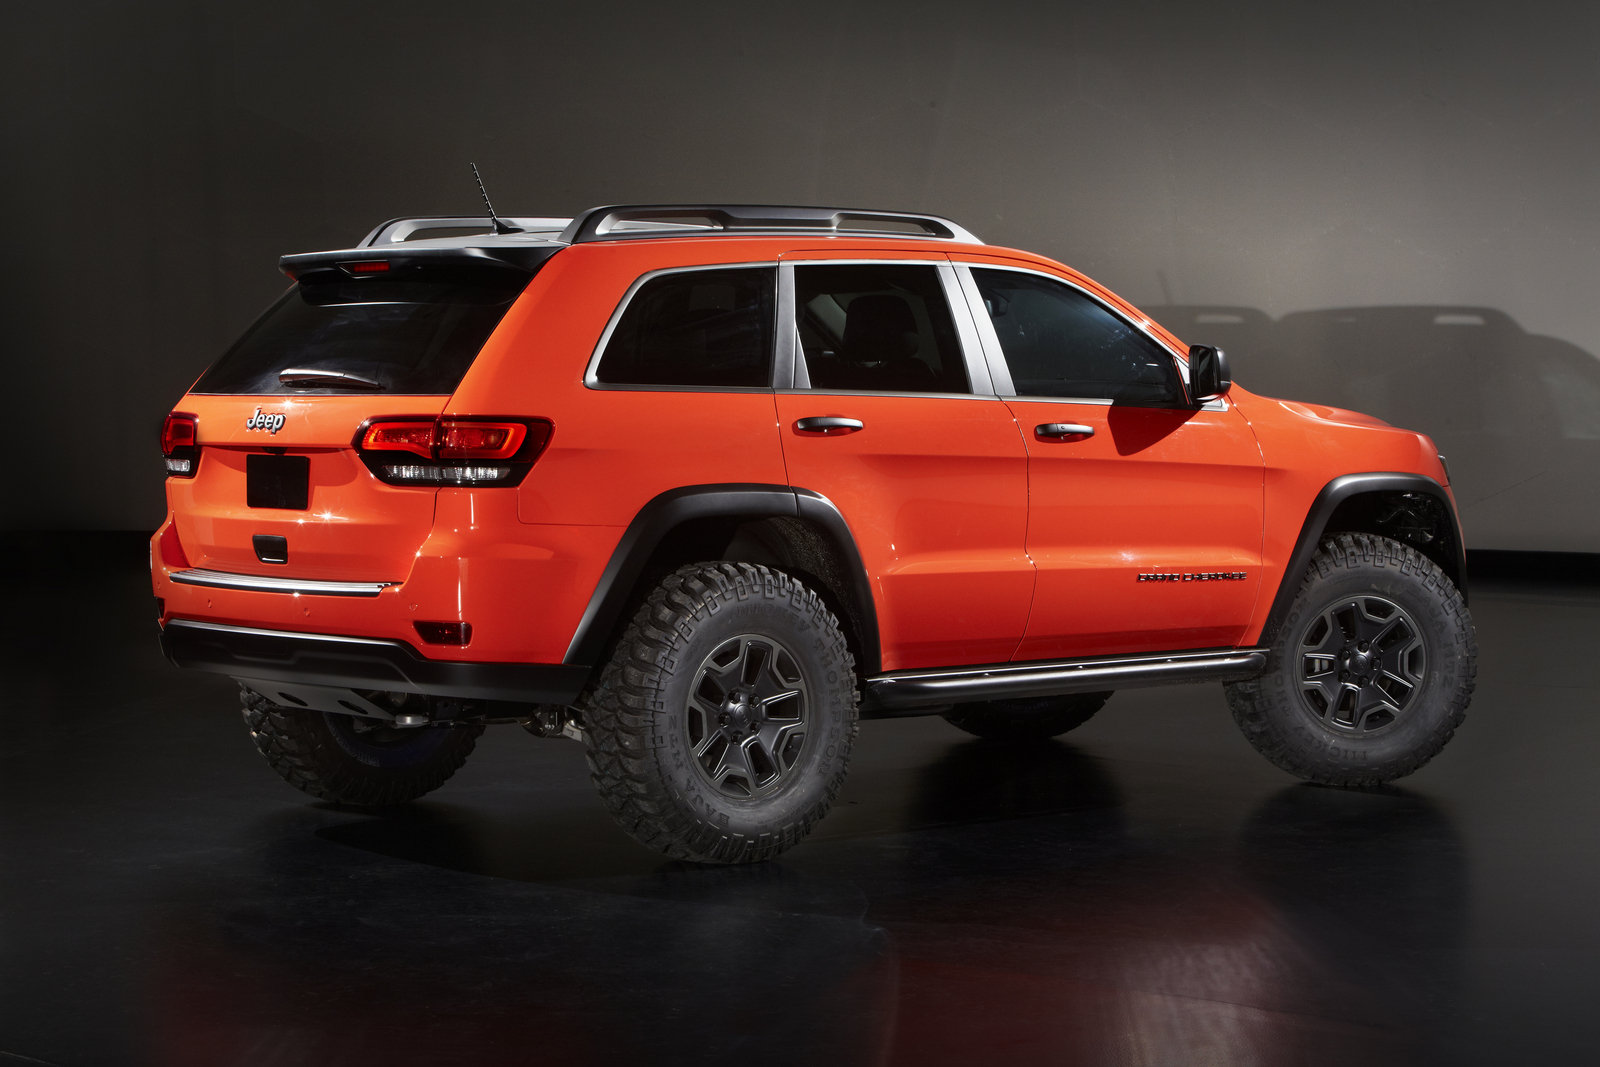 2013 jeep grand cherokee trailhawk ii concept picture 498609 car review top speed. Black Bedroom Furniture Sets. Home Design Ideas